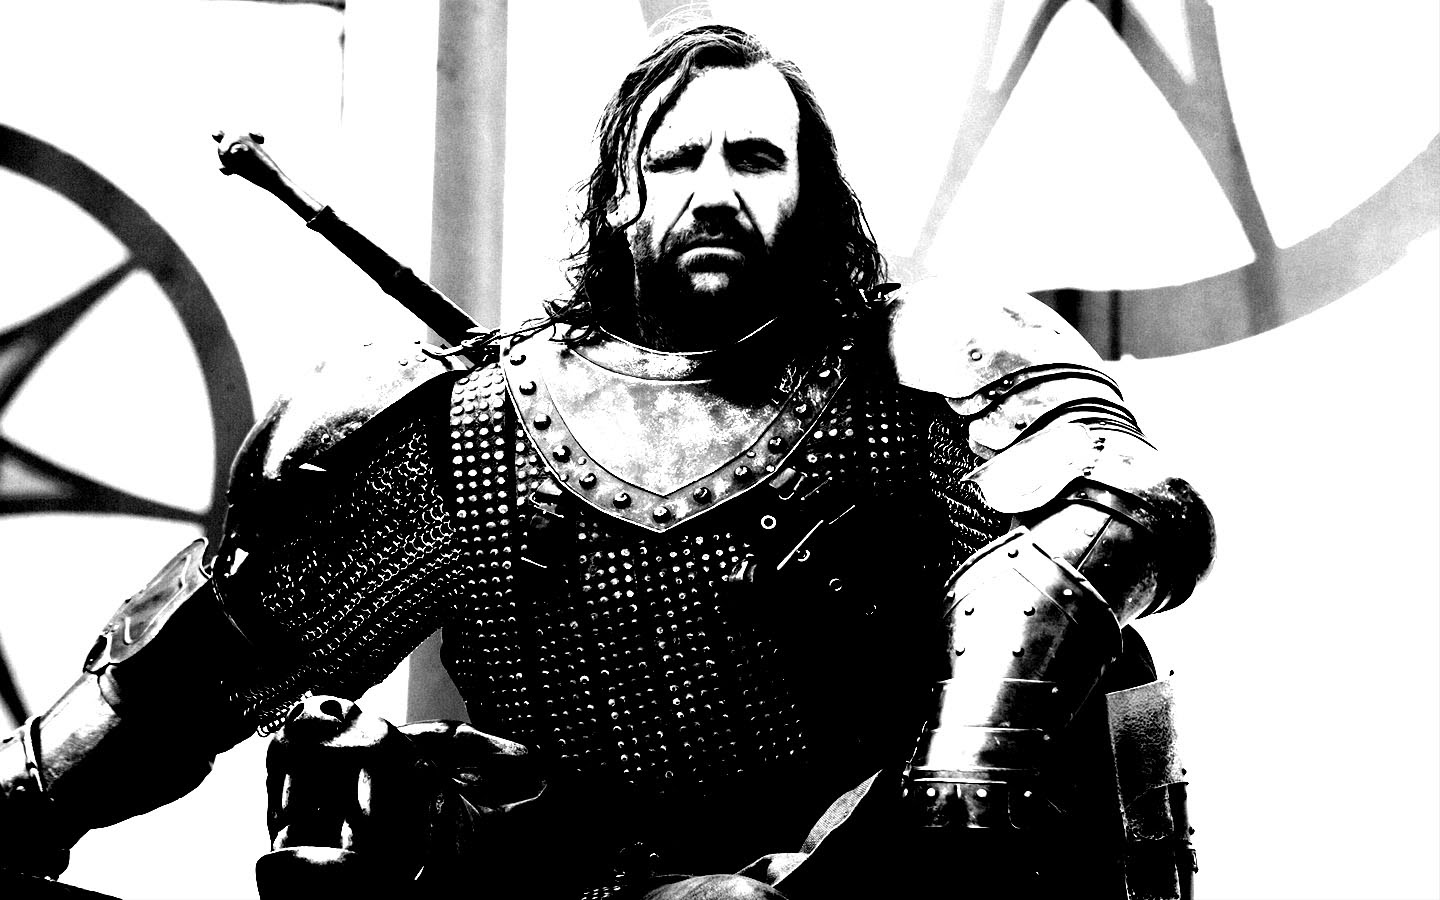 Sandor Clegane Game Of Thrones Wallpaper 30402384 Fanpop